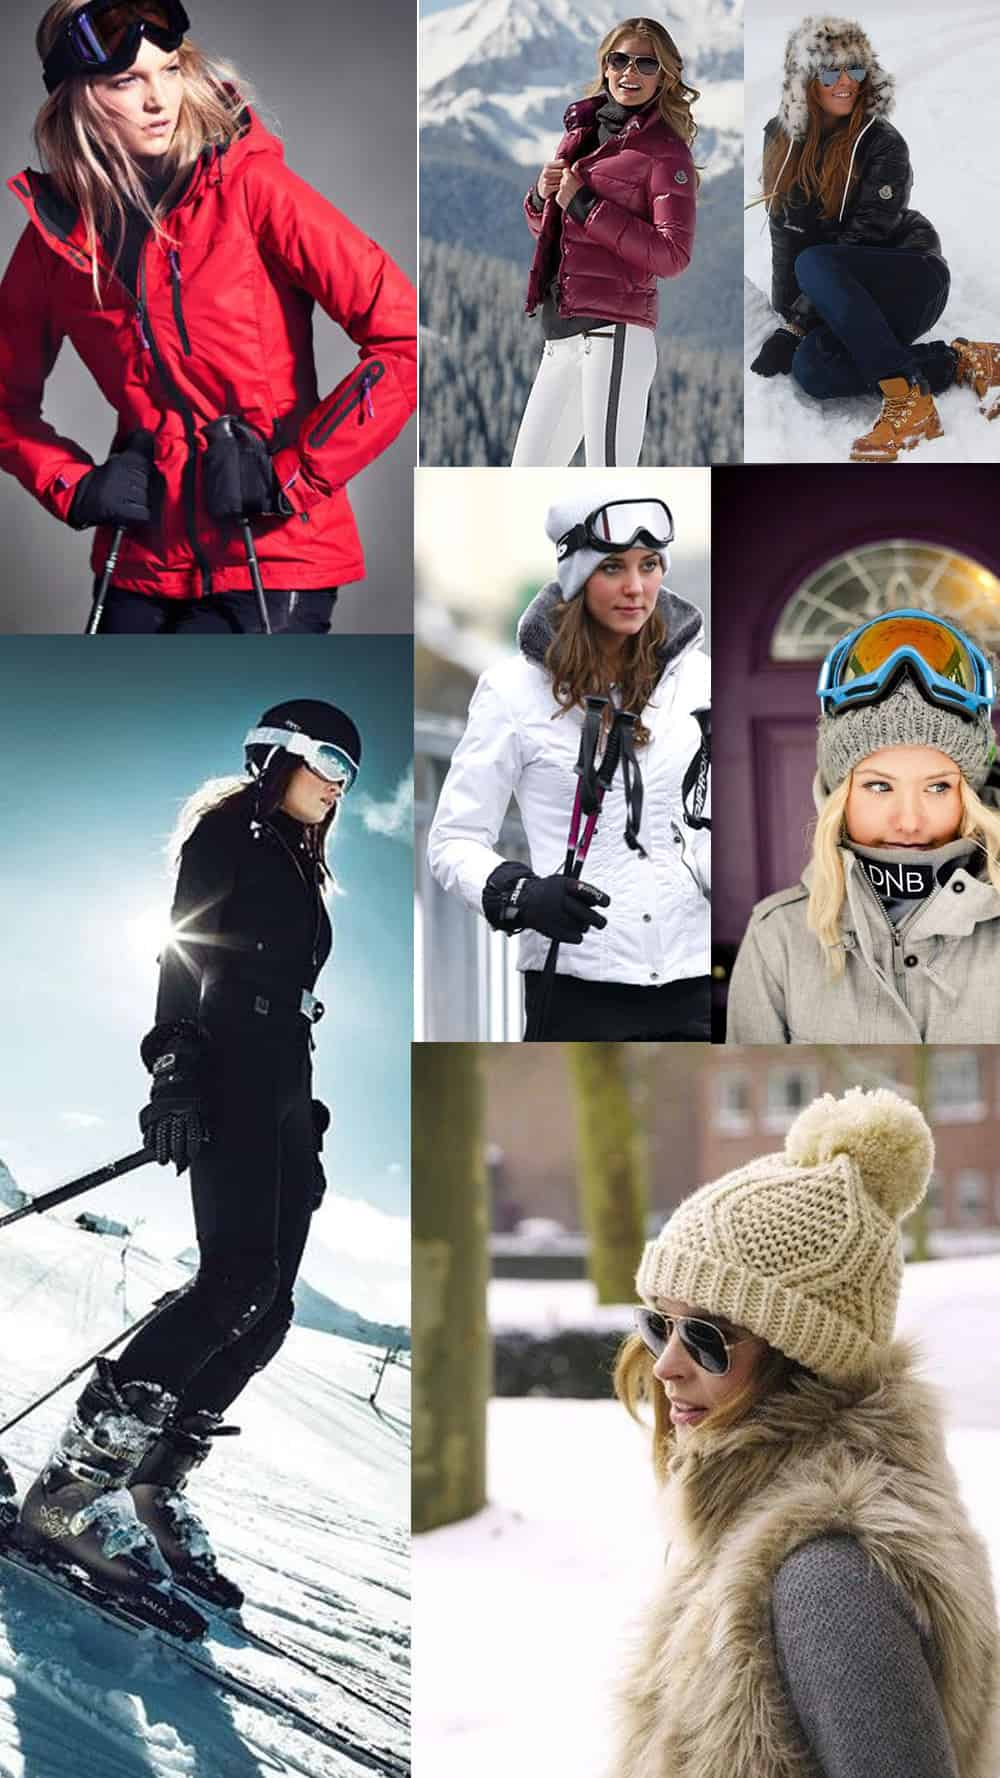 skiing-outfits-fashion-wint